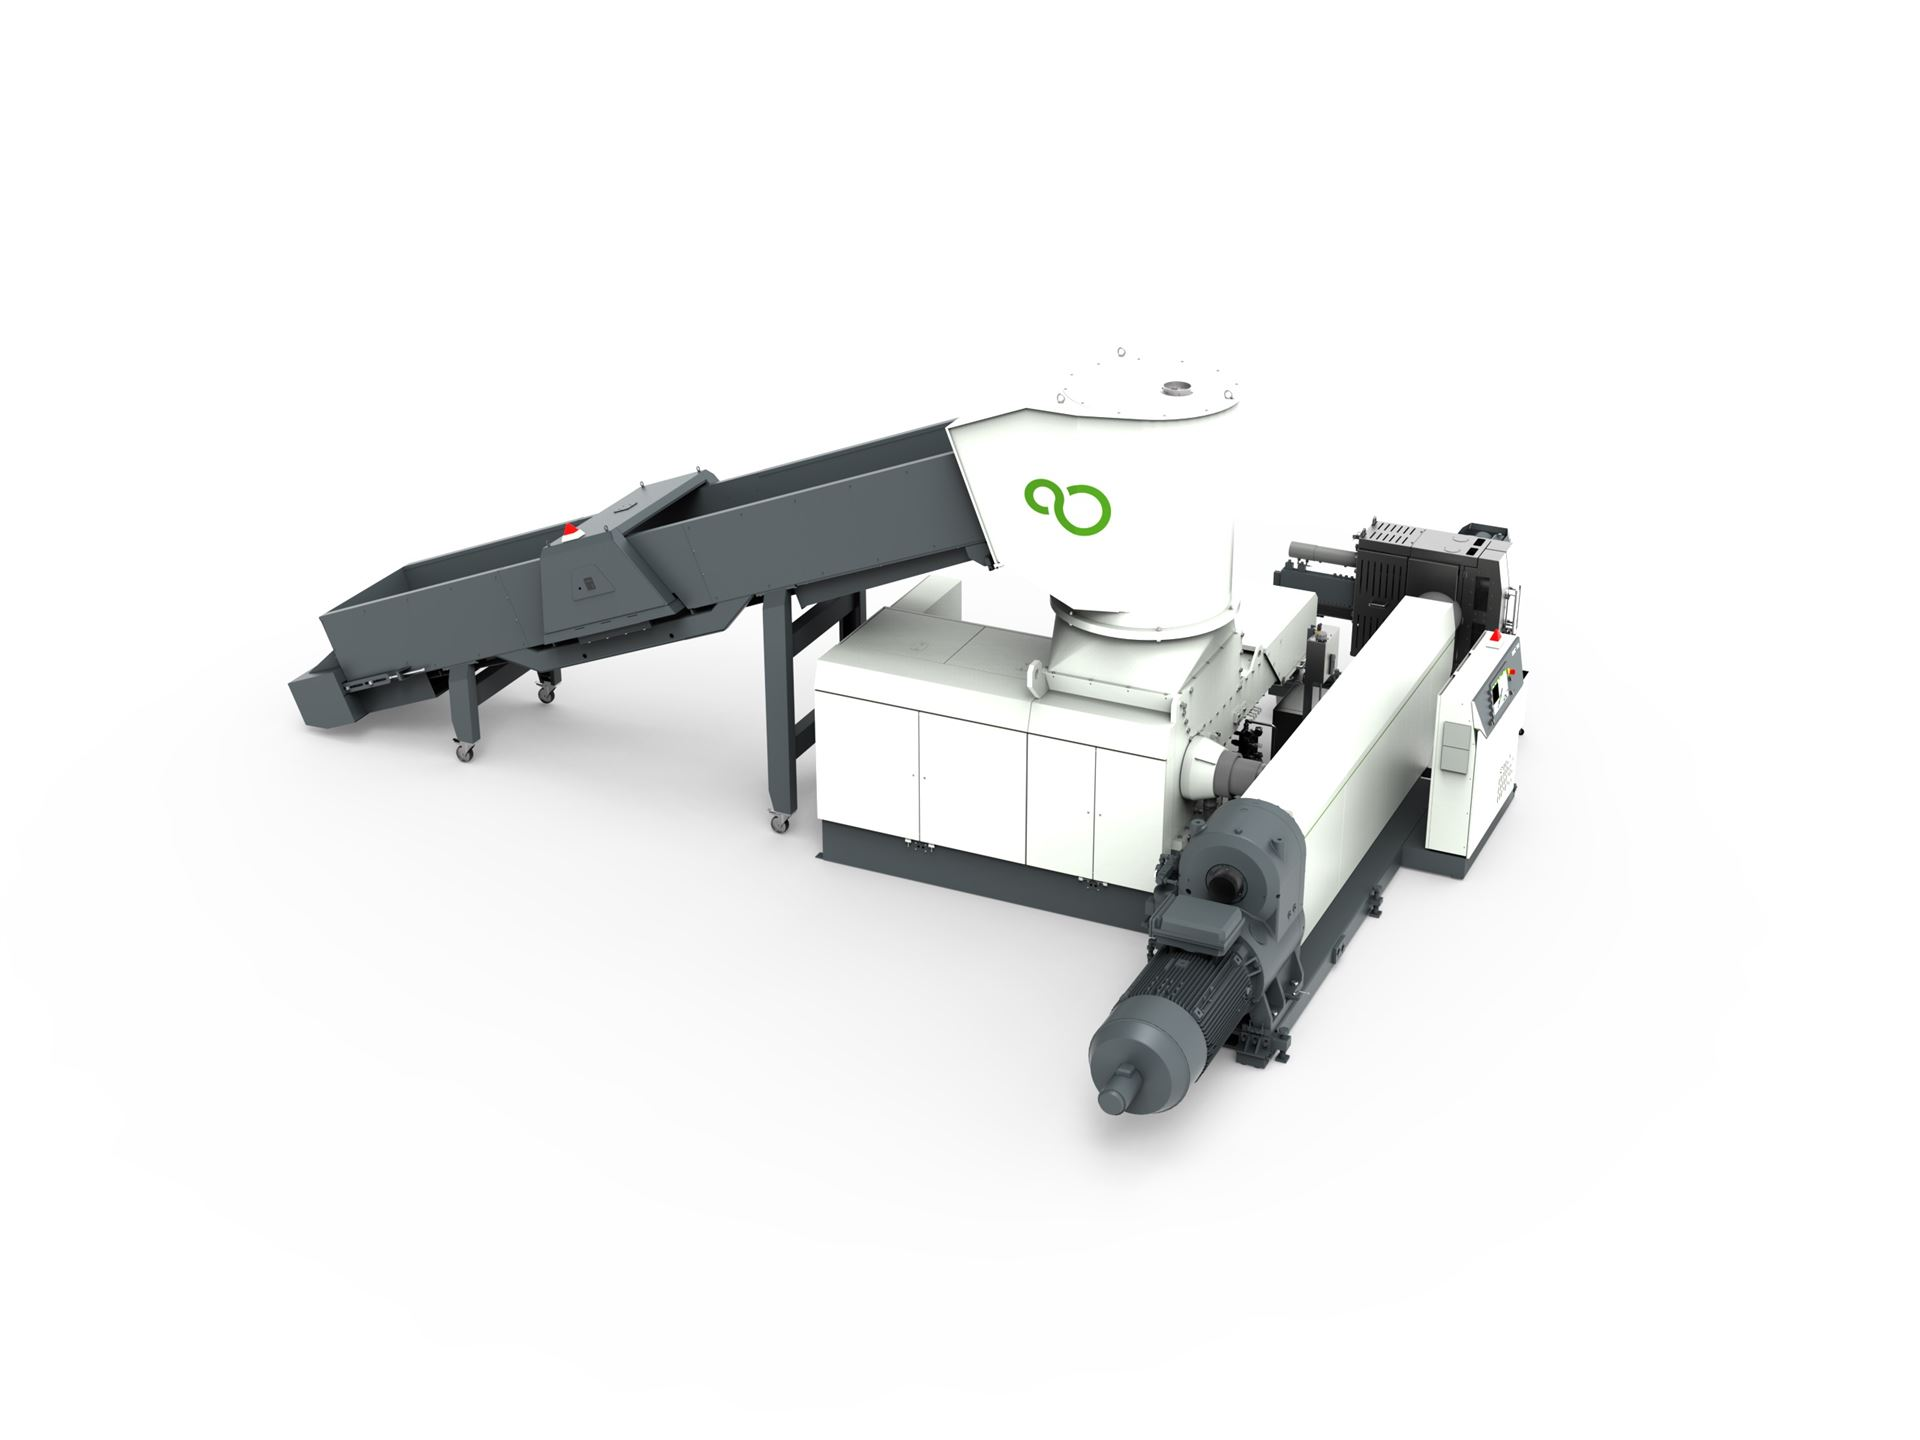 PURE LOOP presents a new shredder-extruder combination for high throughputs